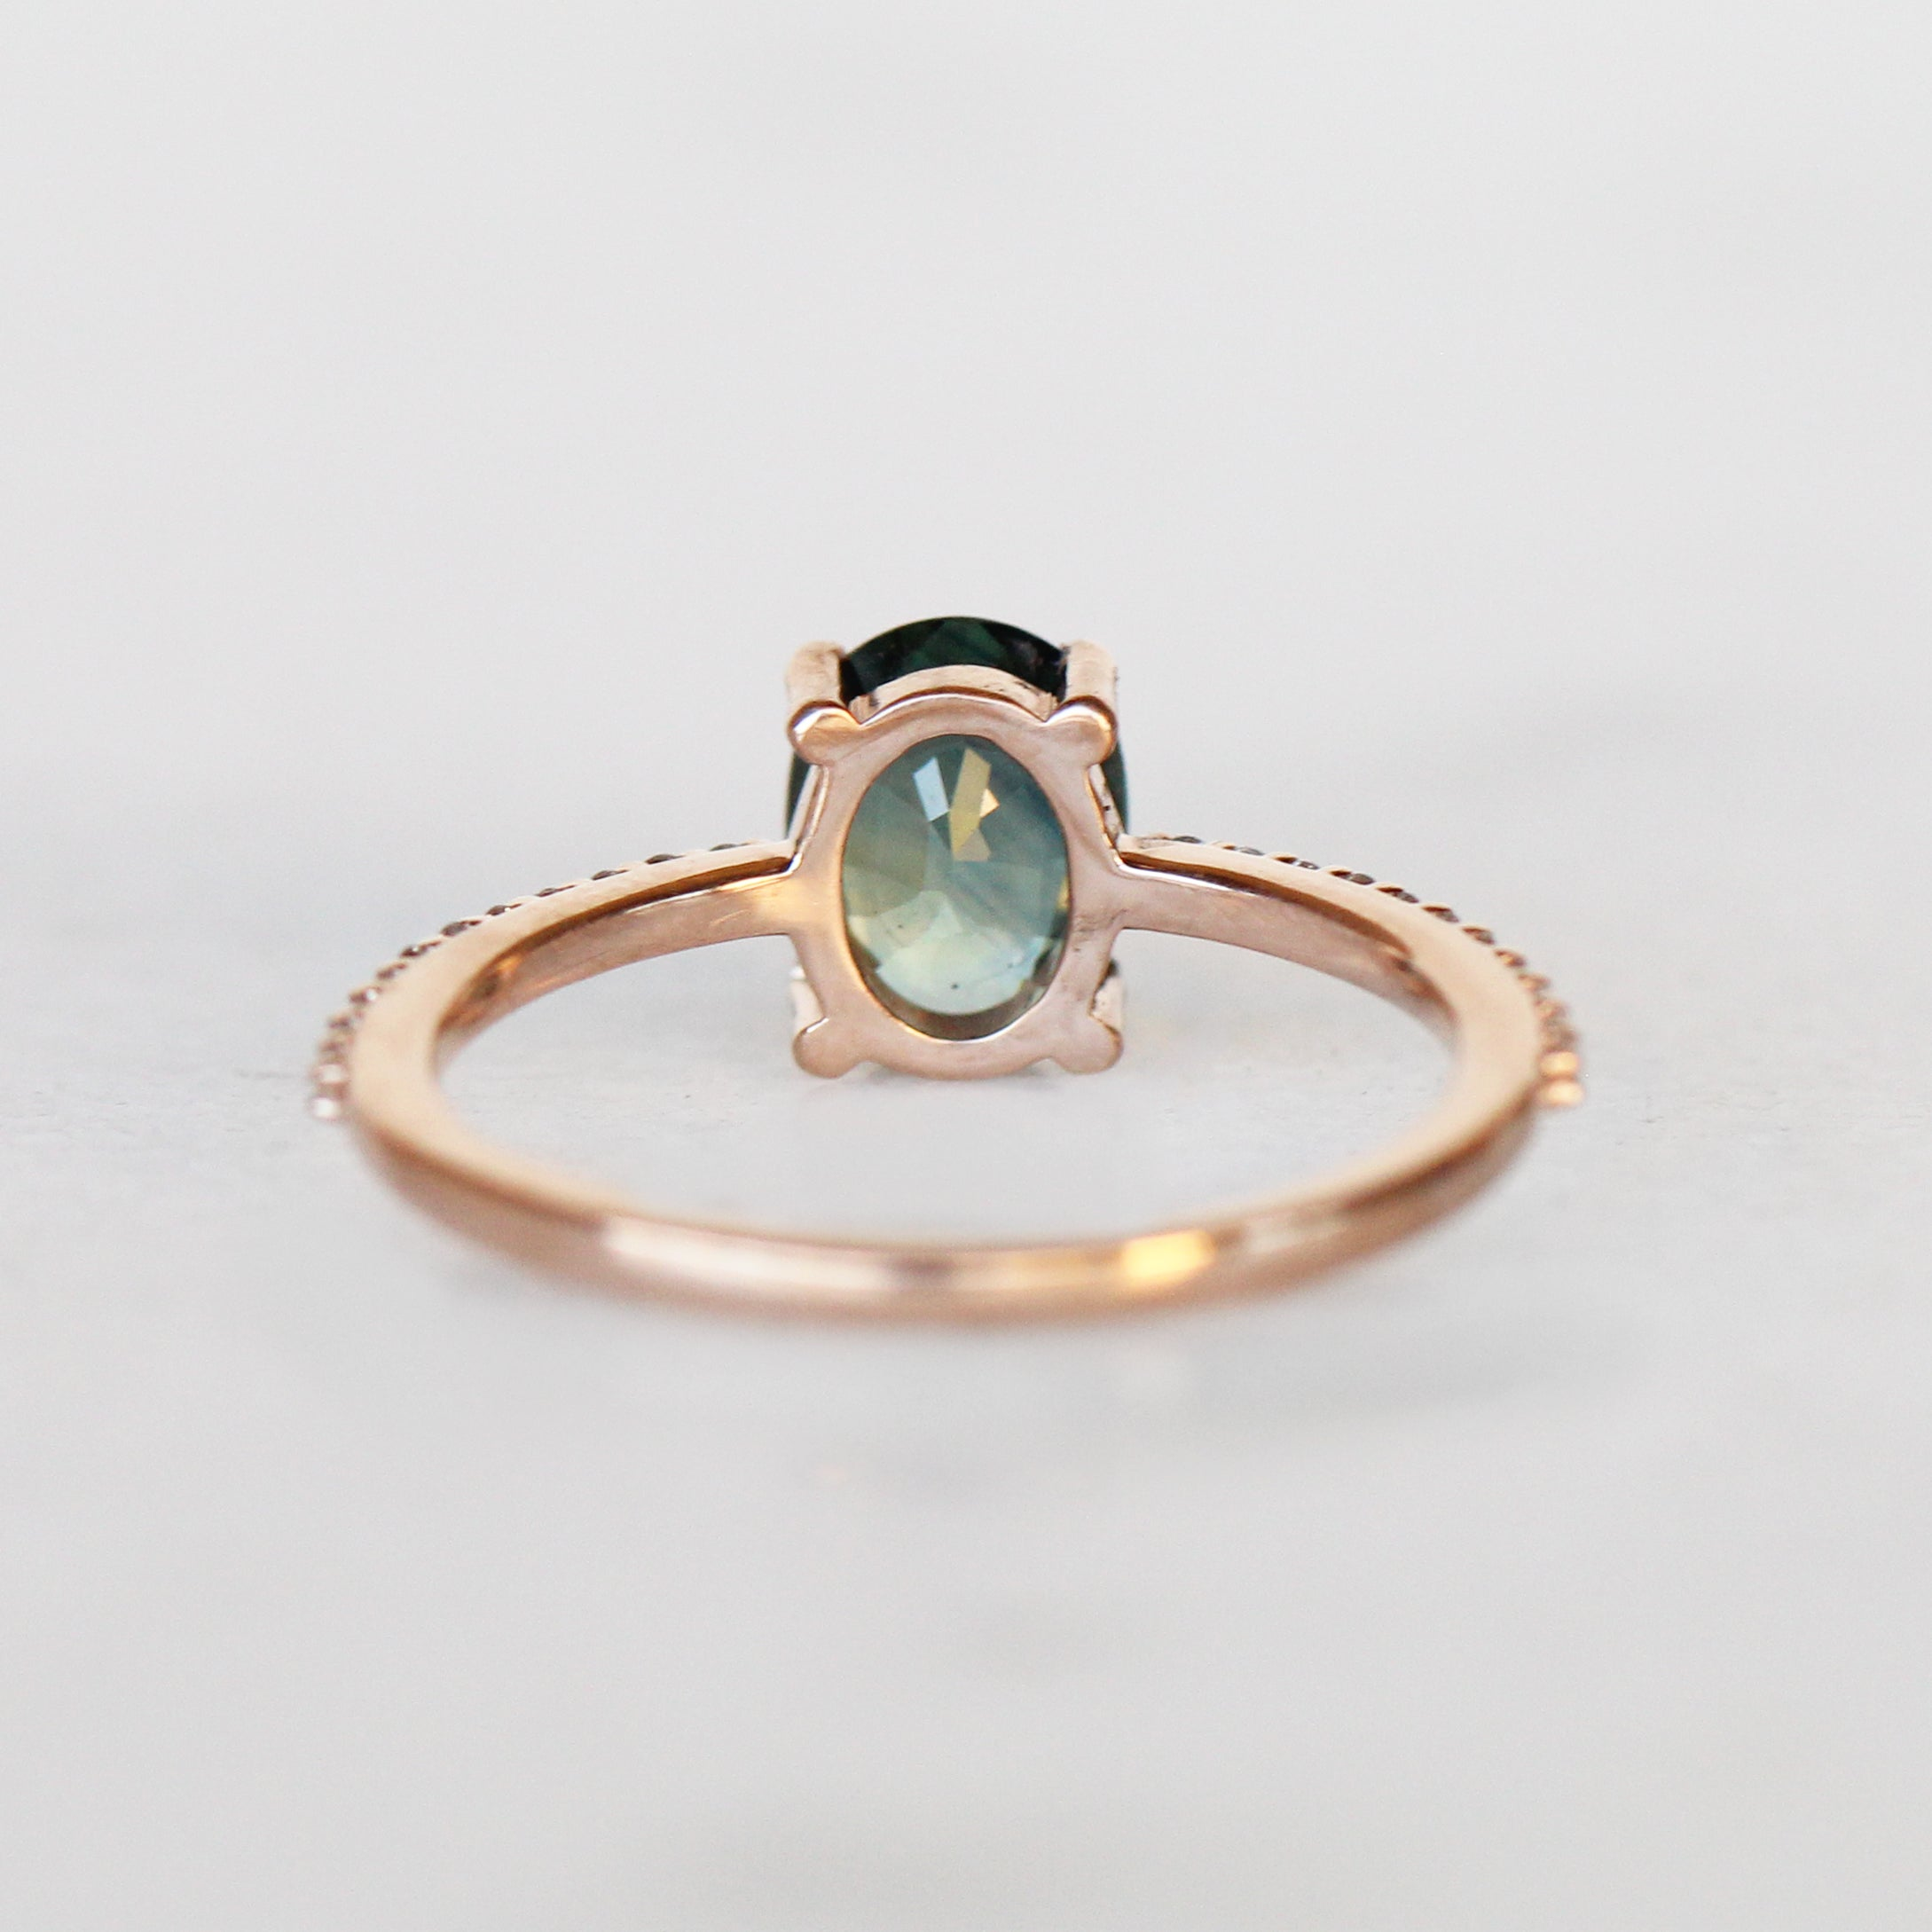 Mia Ring with 1.45ct Oval Sapphire in 10k Rose Gold - Ready to Size and Ship - Celestial Diamonds ® by Midwinter Co.